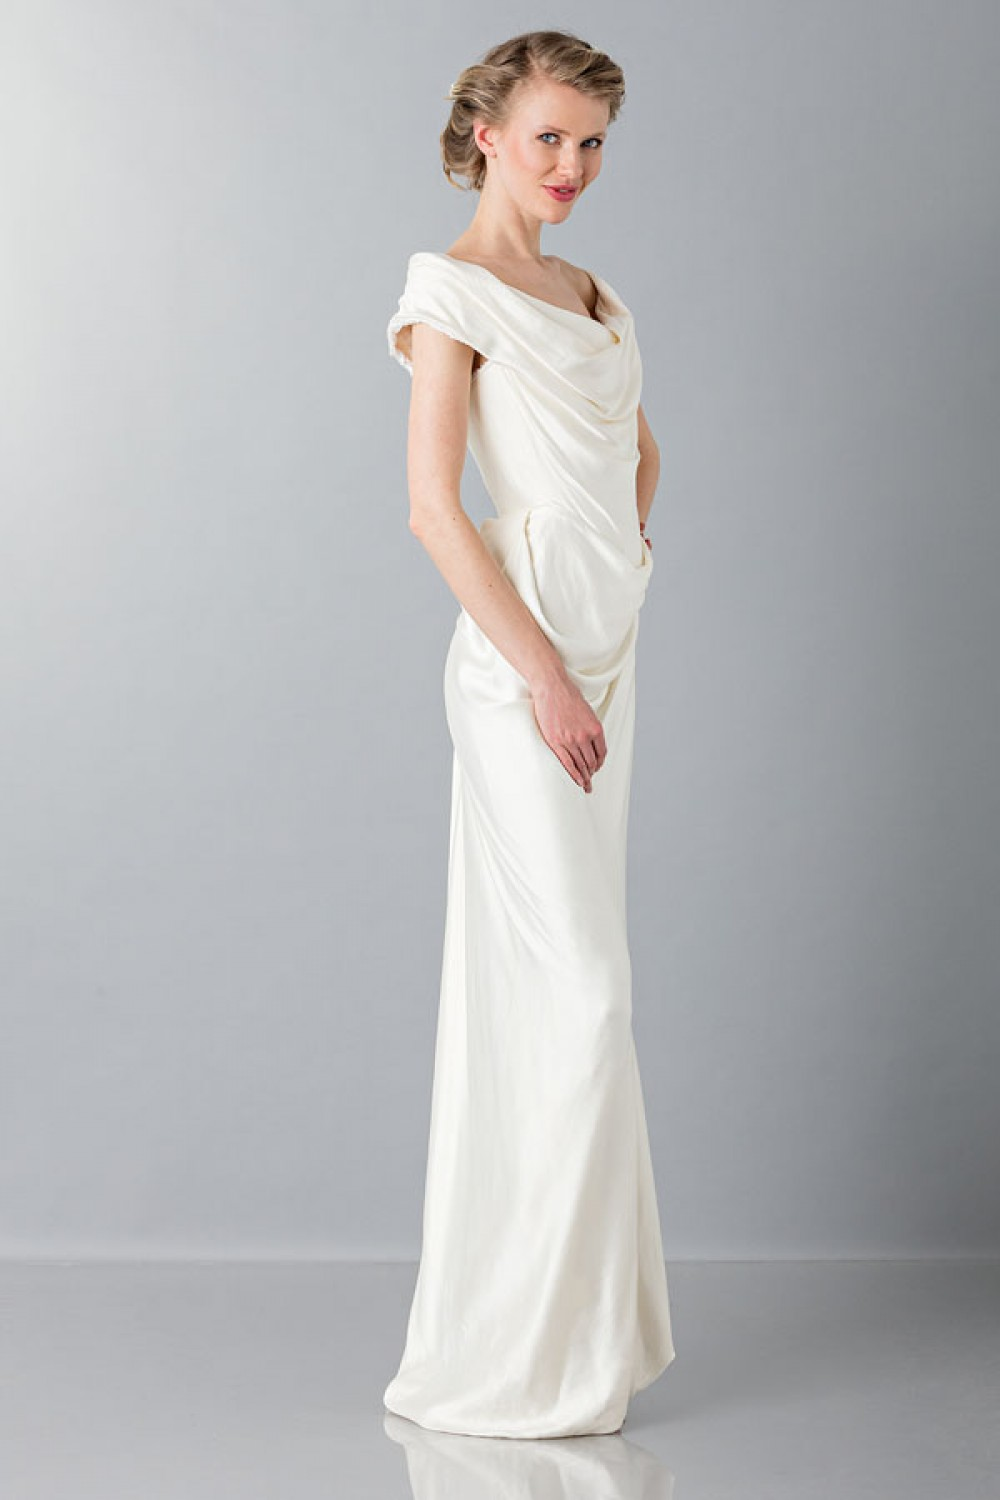 Rent a vivienne westwood dress wedding dress for Vivienne westwood wedding dress price